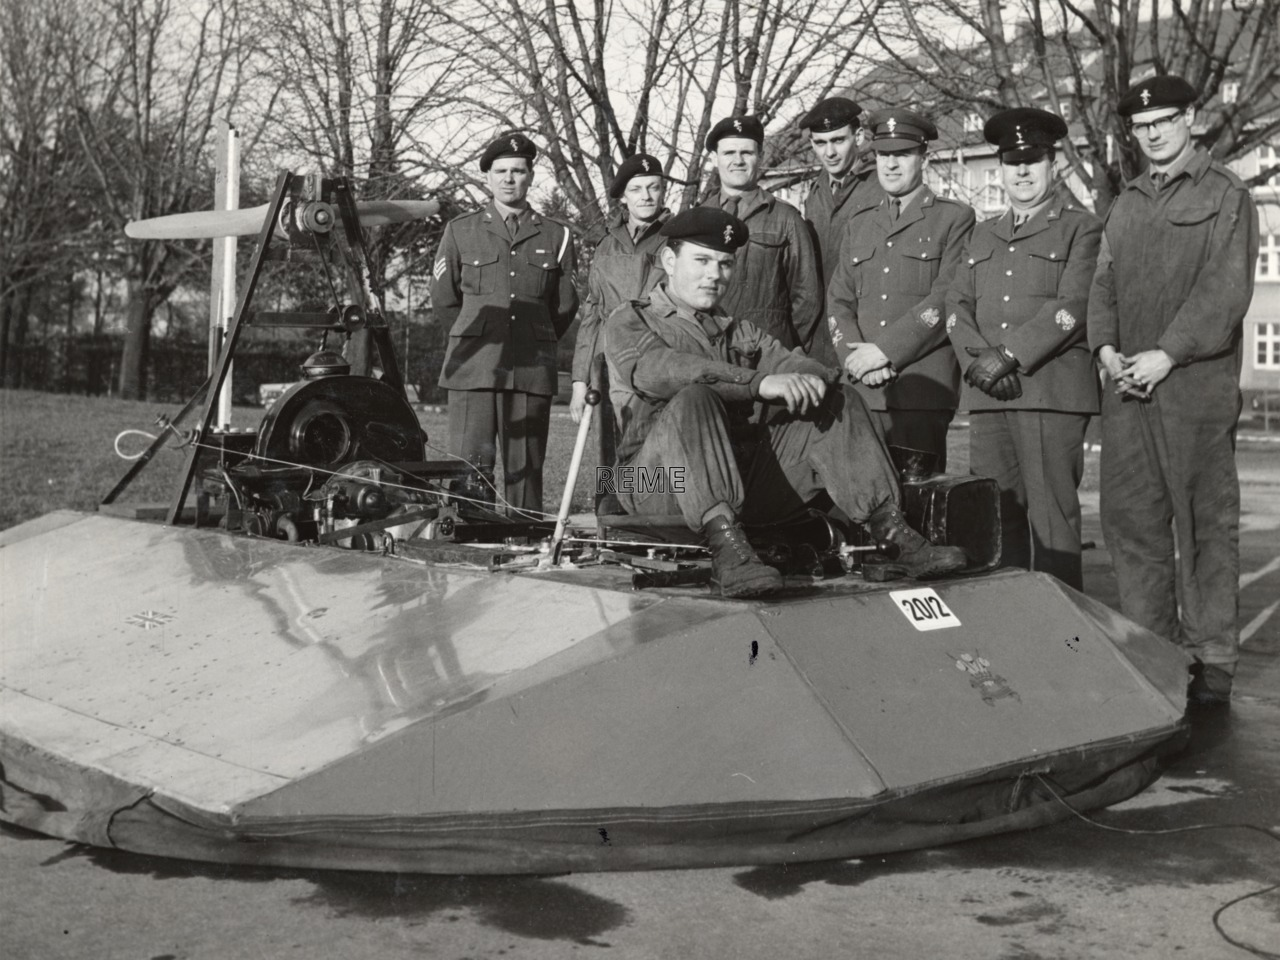 3 Carabiniers LAD (Light Aid Detachment) with hovercraft, December 1966.